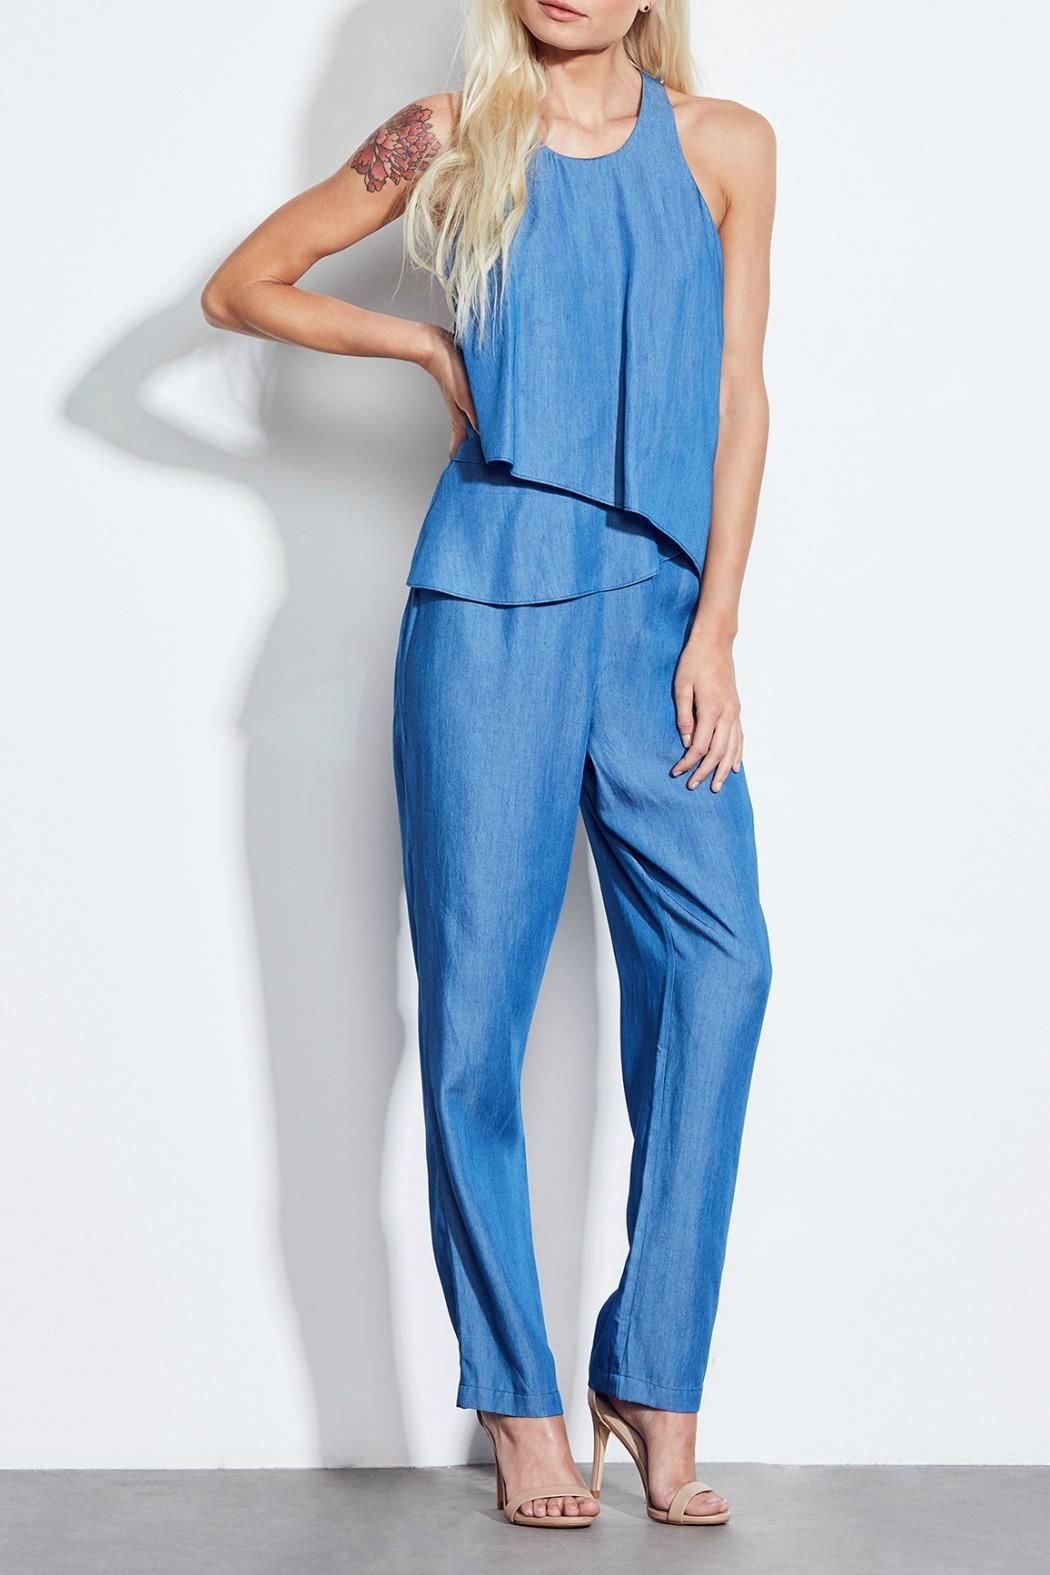 Chambray more like cham-part-tay. This chambray sleeveless jumpsuit features cross-over draped bodice racerback back and elastic waistline in the back for a better fit. Jungle Garden Jumpsuit by Ali & Jay. Clothing - Jumpsuits & Rompers - Jumpsuits Ohio